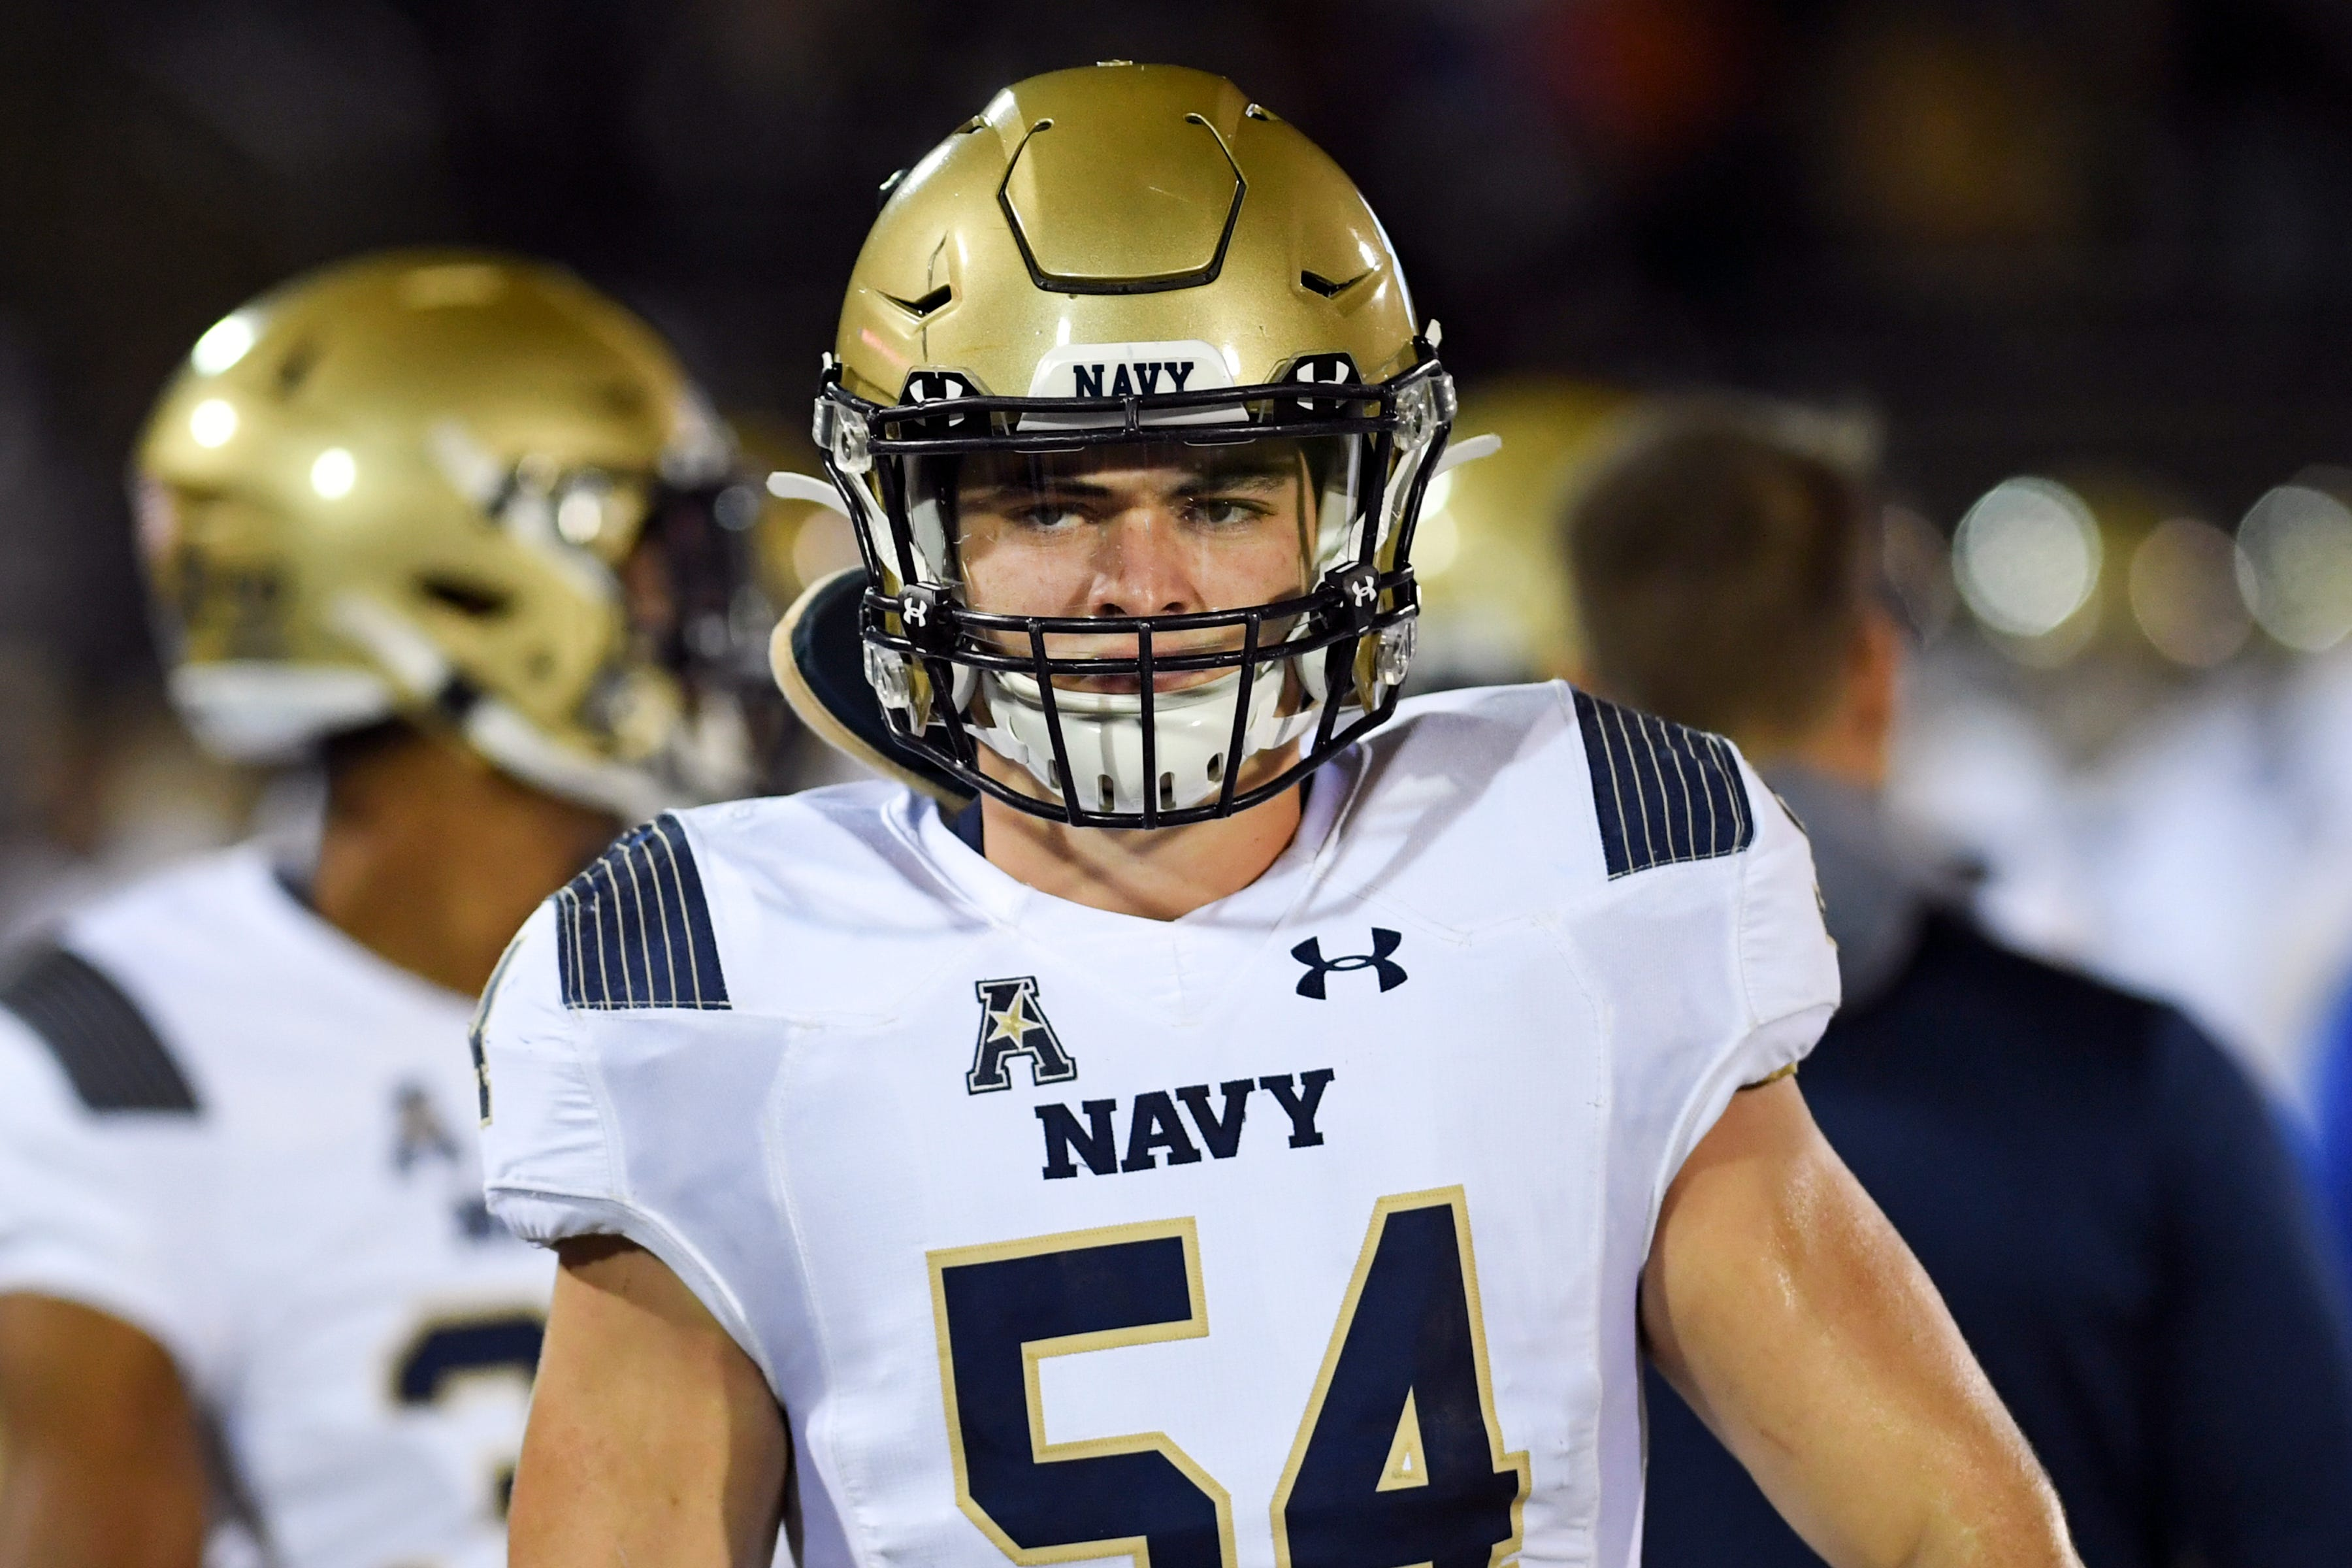 Scouting report: A look at the Navy Midshipmen, the next opponent for No. 2/3 Cincinnati